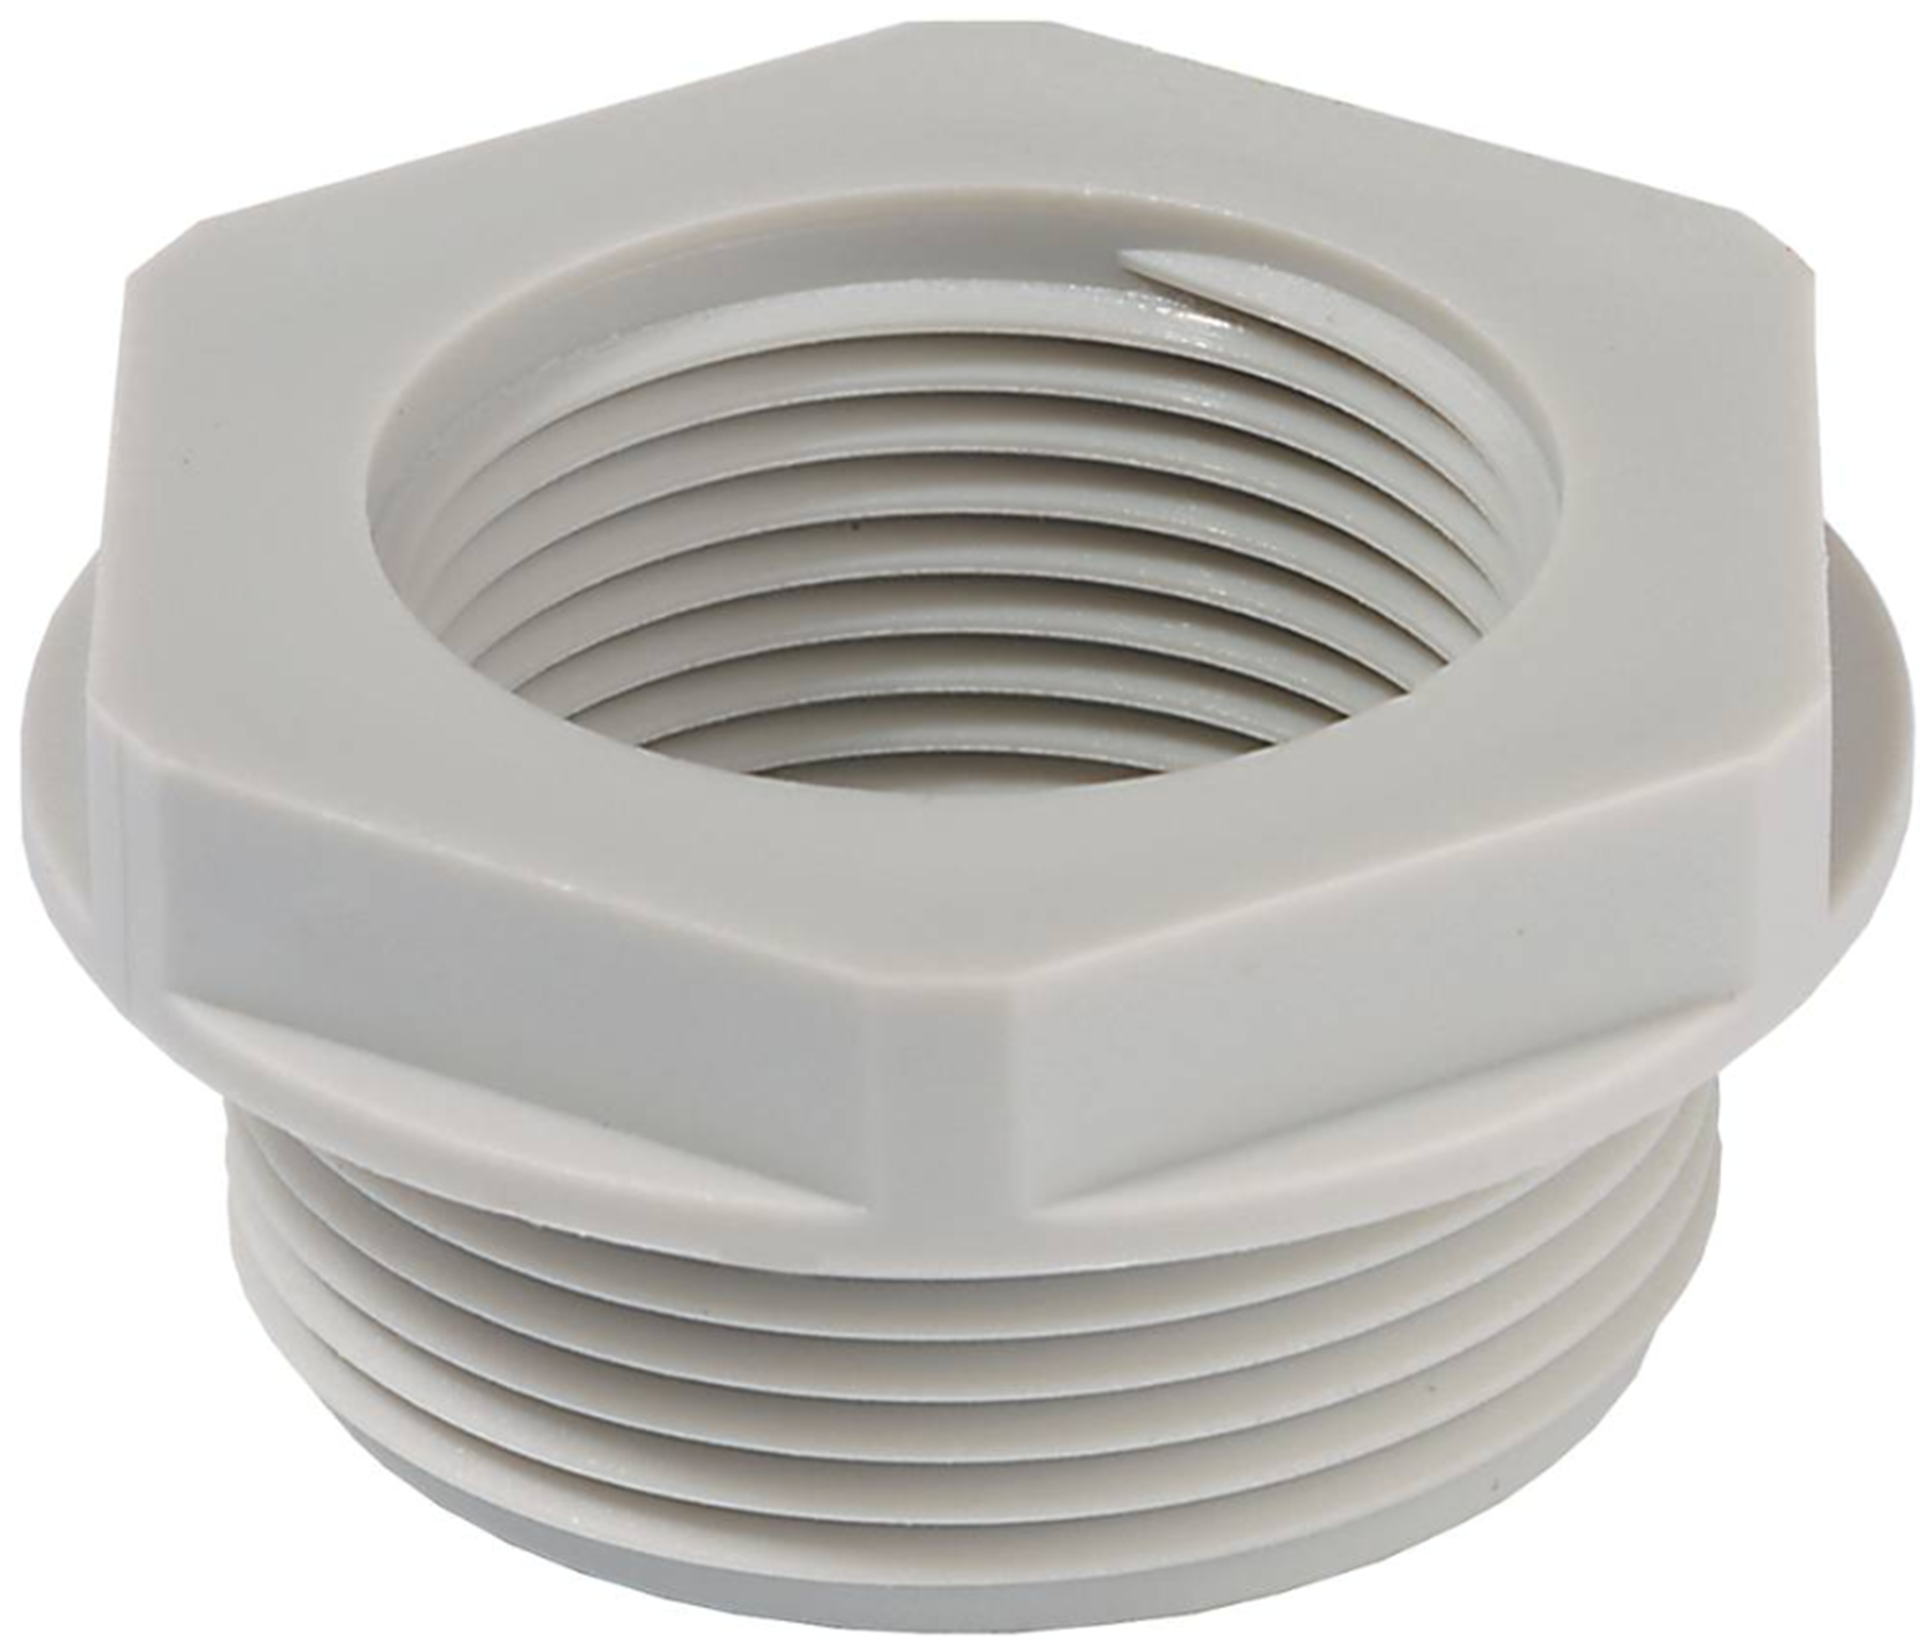 Wiska KRM 40/25 Reduction Adapter LG 10063587